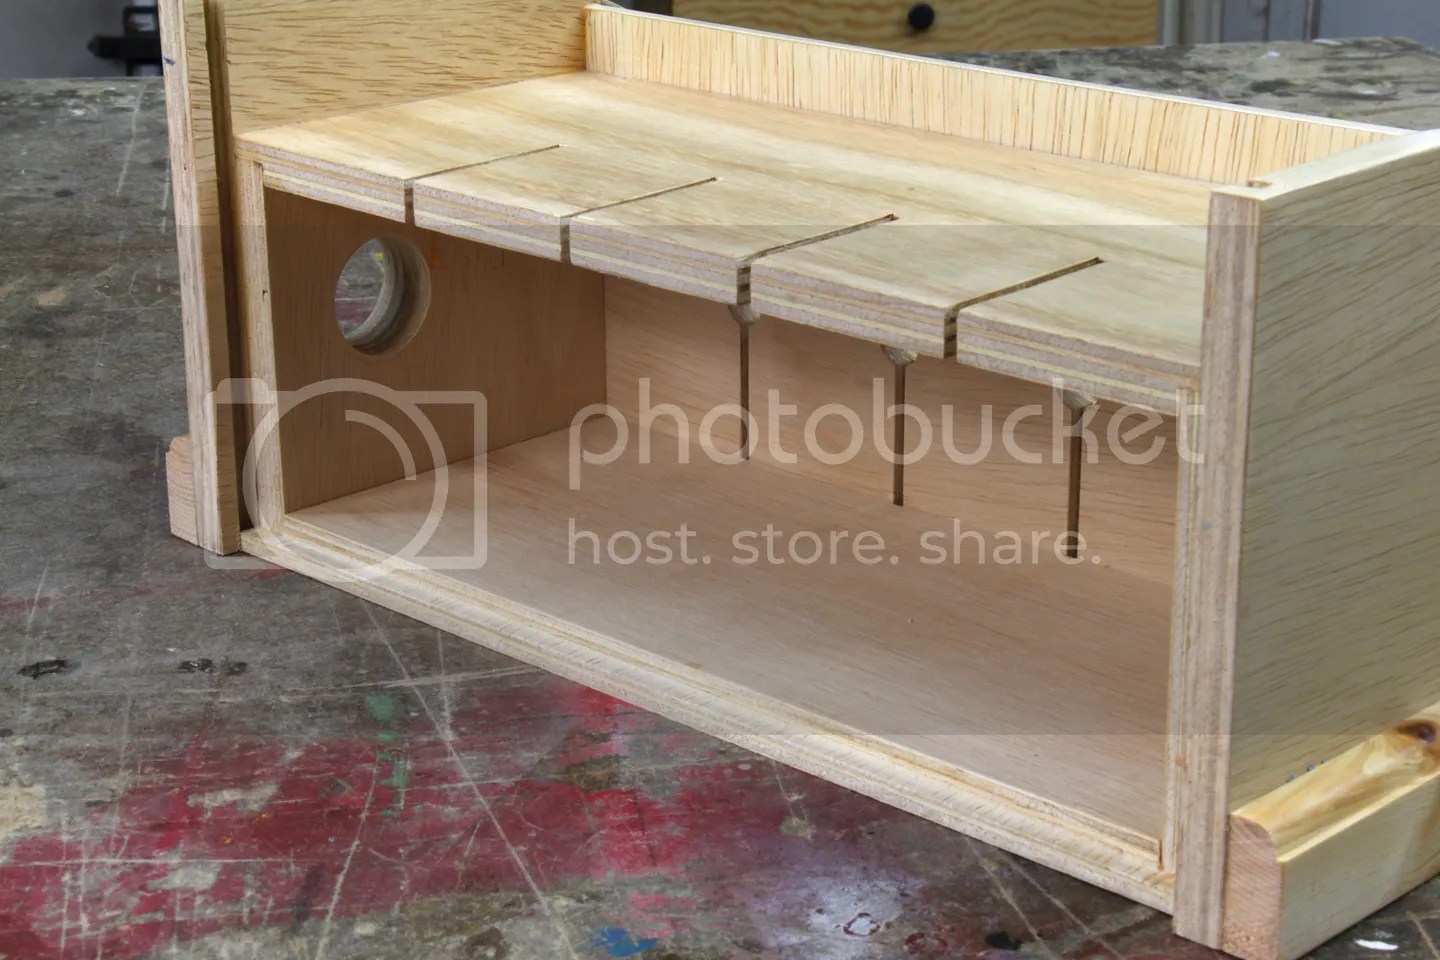 How To Build Plans For Building A Charging Station Plans